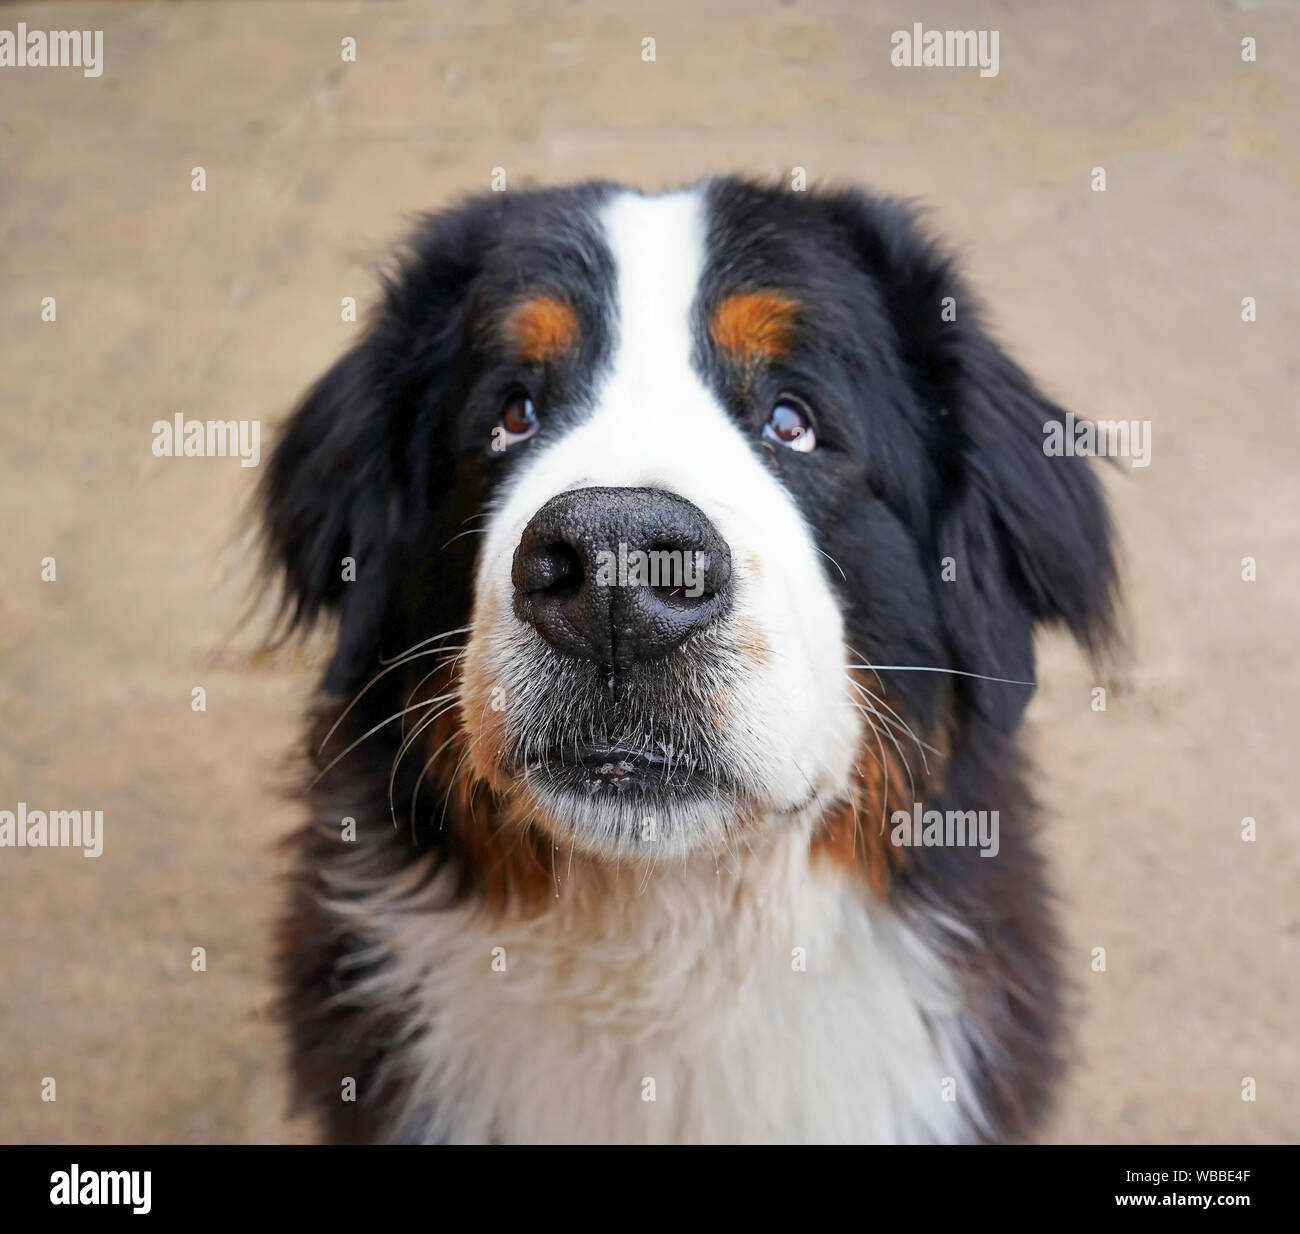 The Portrait Of The Bernese Mountain Dog Looking At The Camera Puppy Eyes Stock Photo Alamy